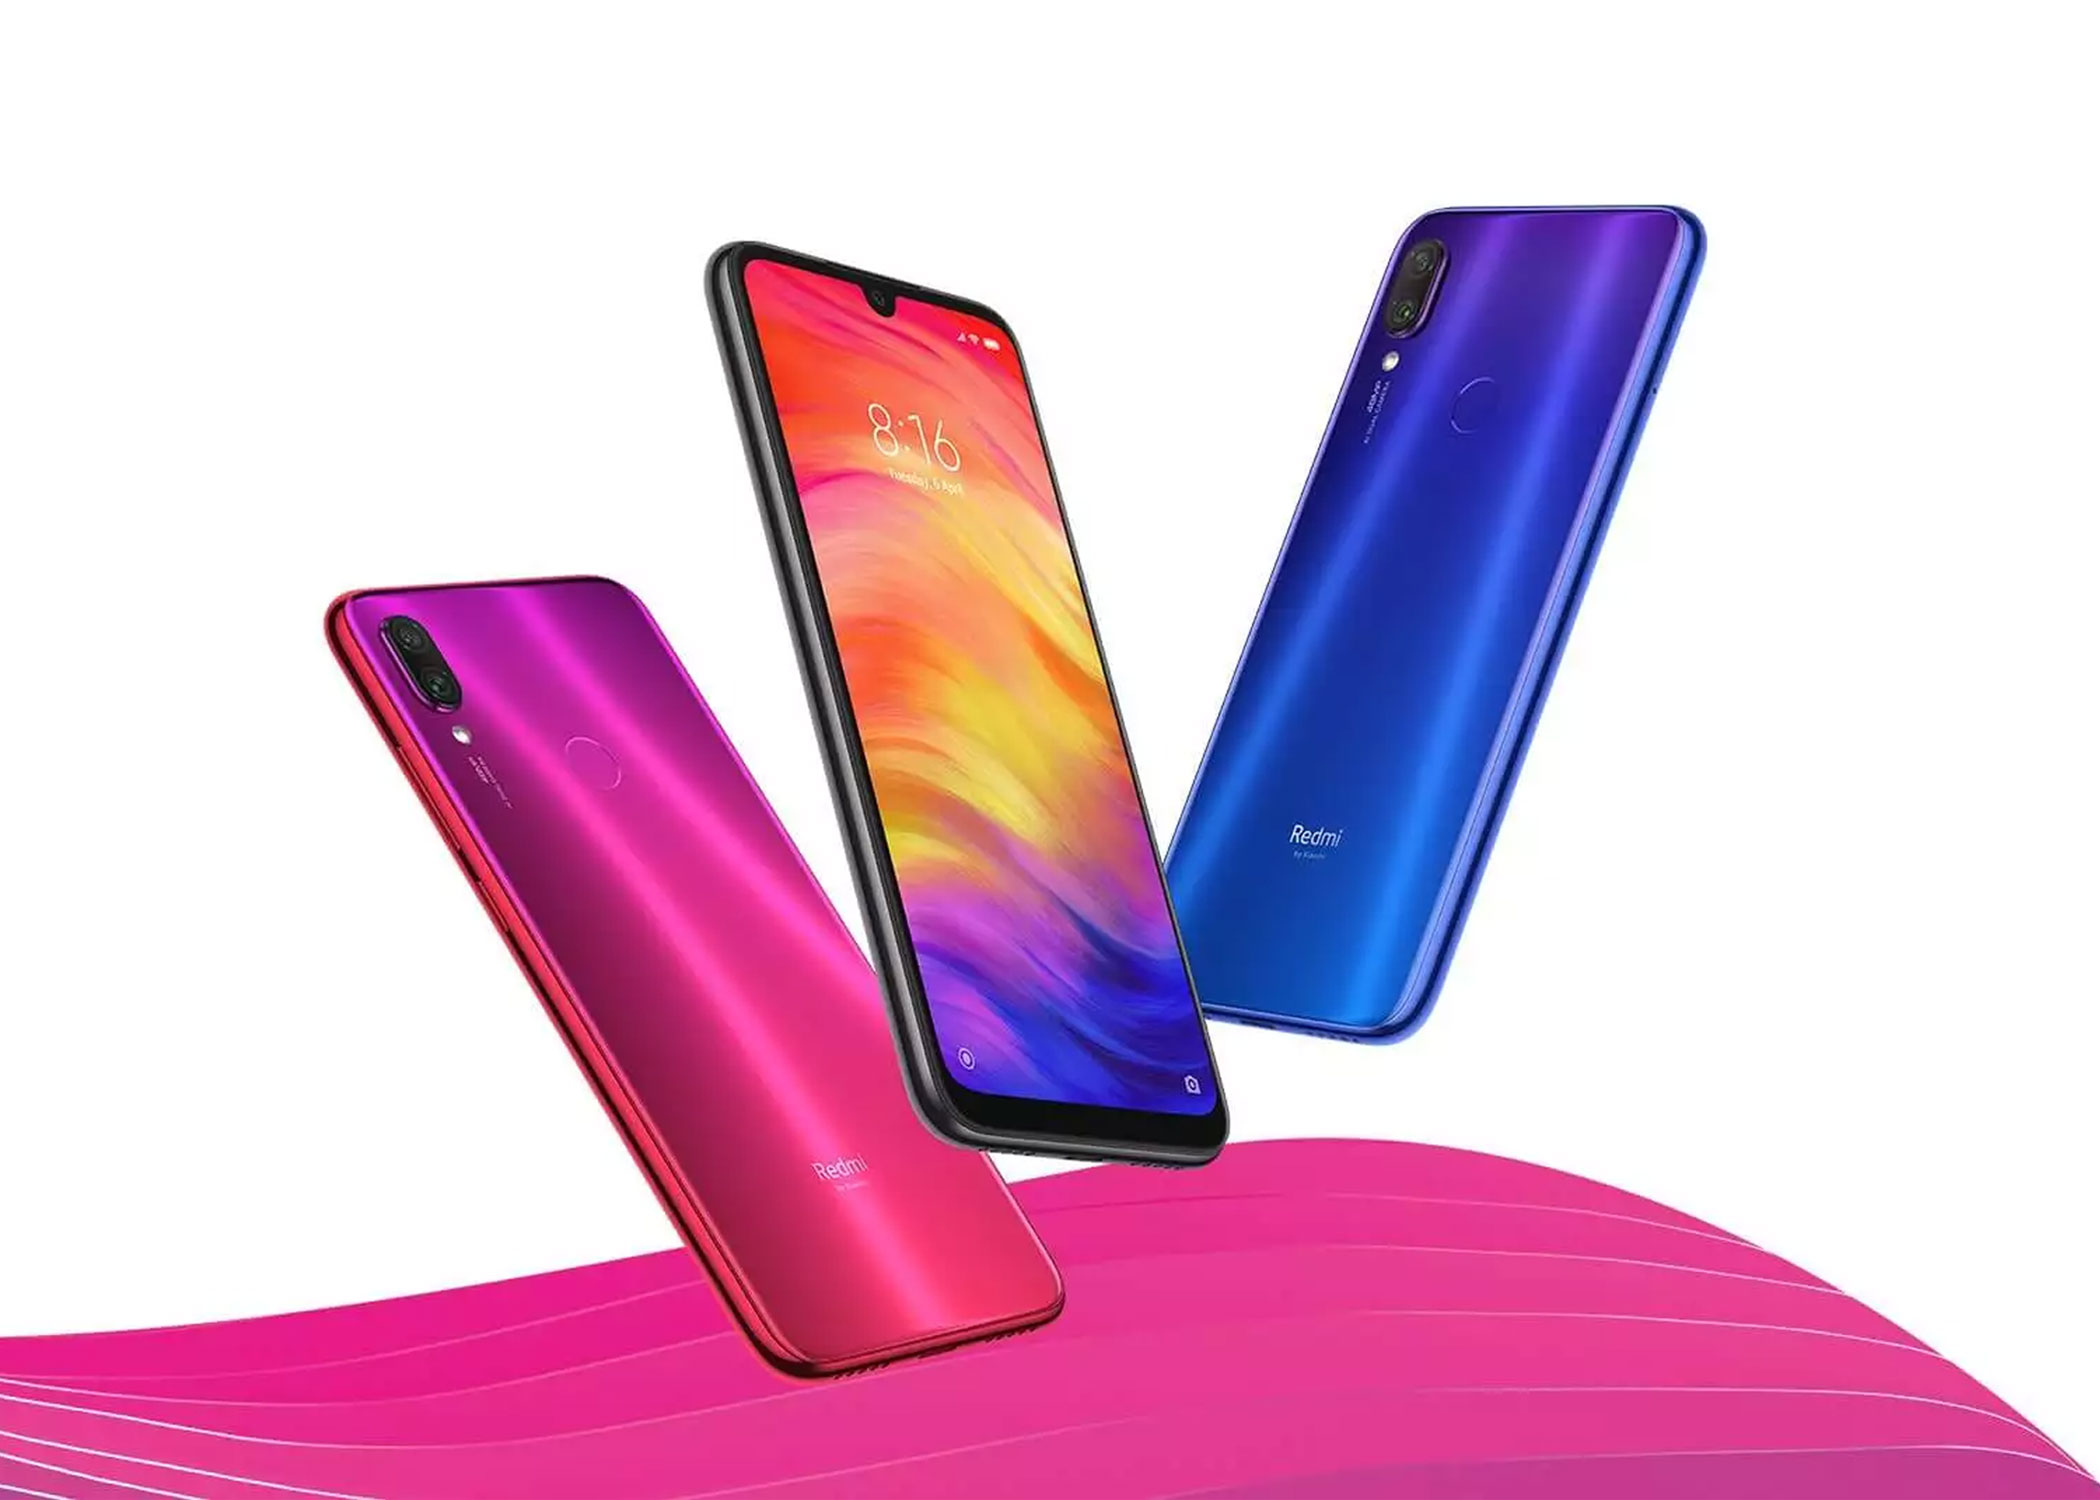 The Redmi Note 7S with a 48 MP Camera Officially Breezes